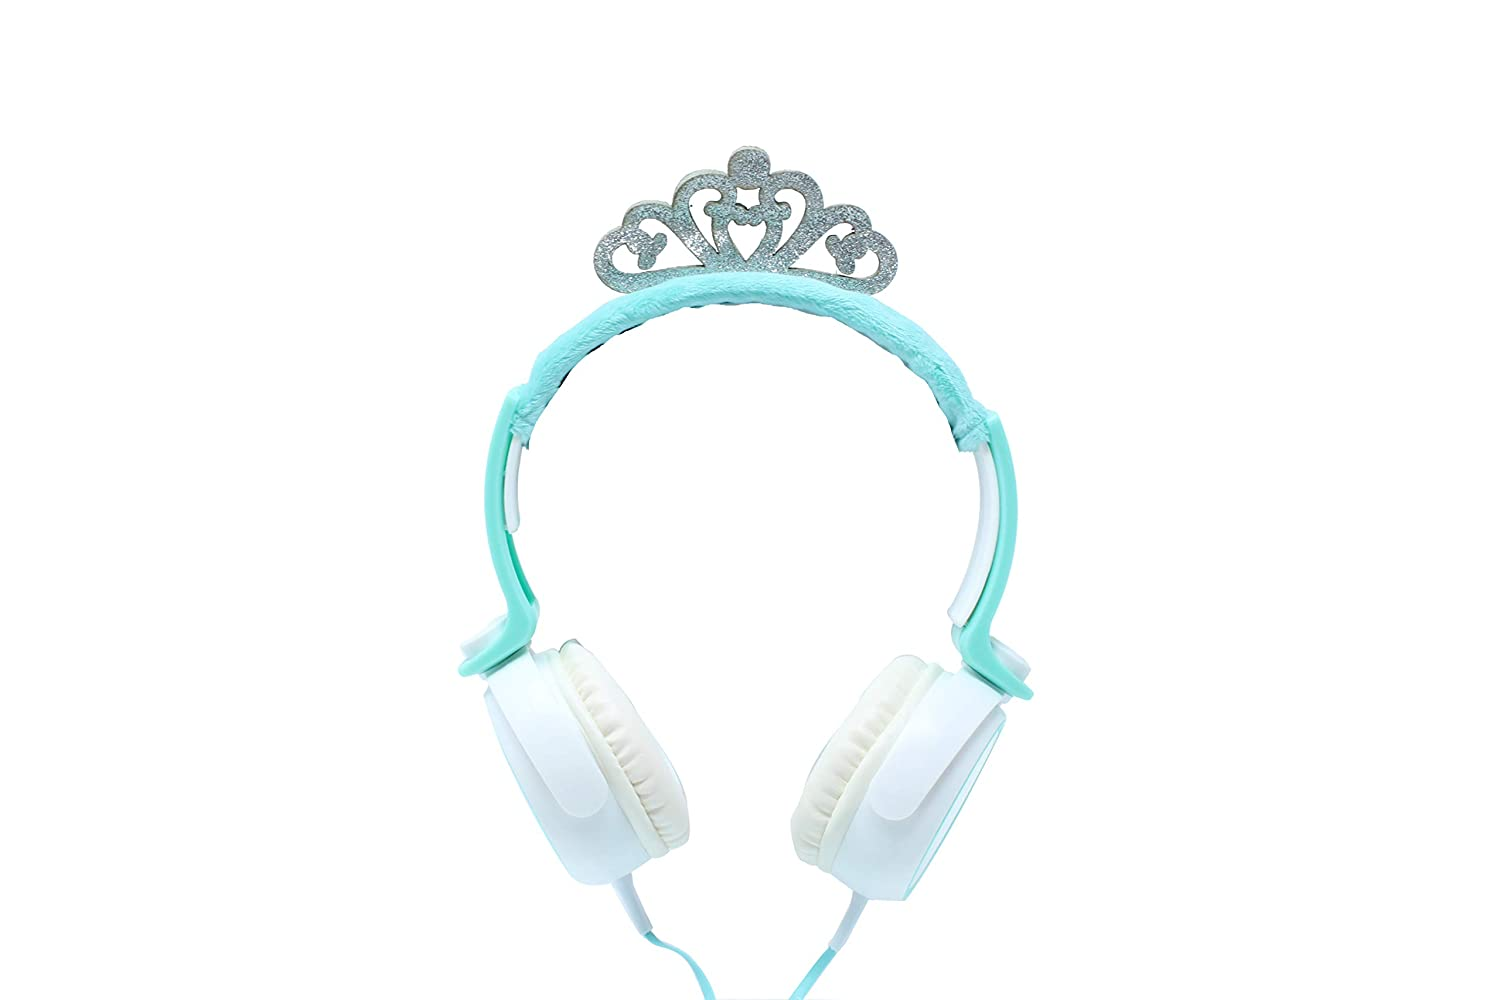 Gabba Goods Premium Design Princess Crown Over The Ear Comfort Padded Stereo Headphones AUX Cable | Earphones